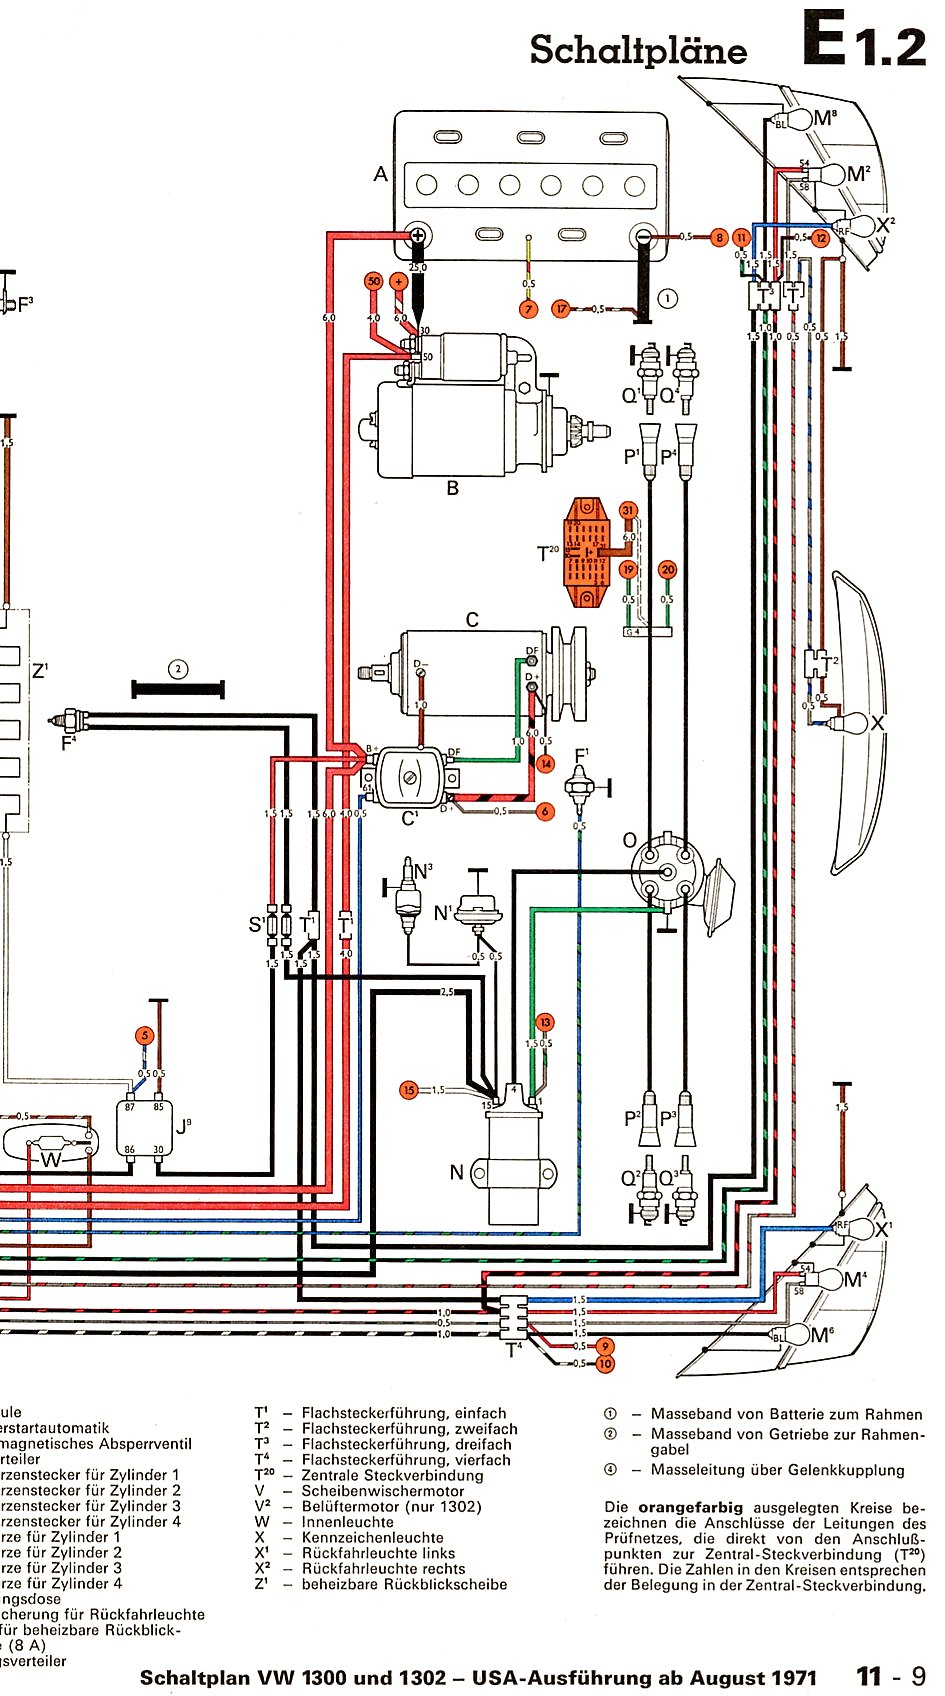 hight resolution of 67 vw bus wiring diagram 67 vw bus seats wiring diagram vw generator to alternator conversion vw generator to alternator conversion